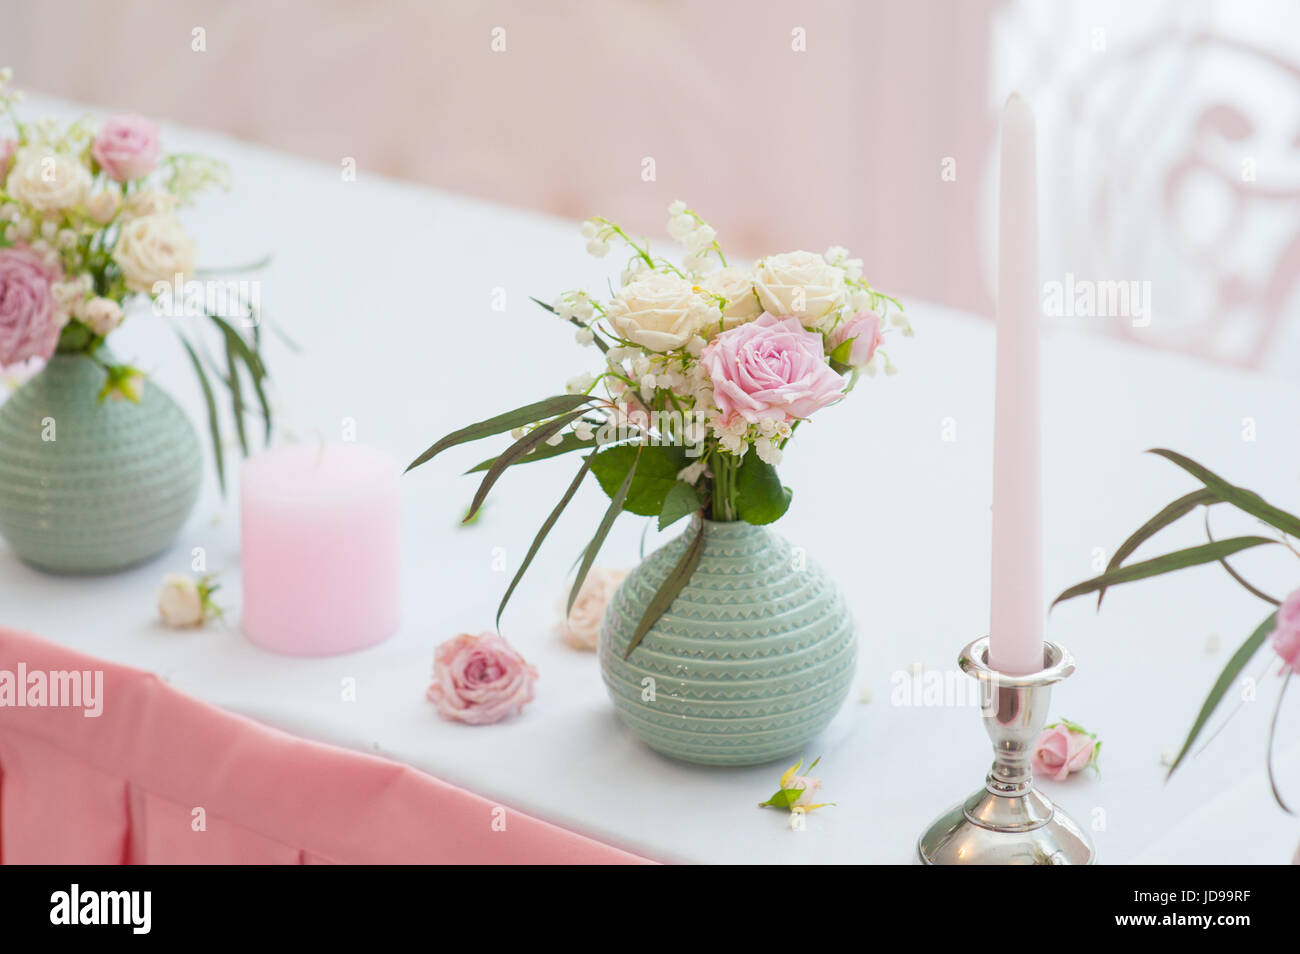 Wedding Festive Decor Bouquet From Spring Flowers Table Layout Of Newly Married Restaurant Interior